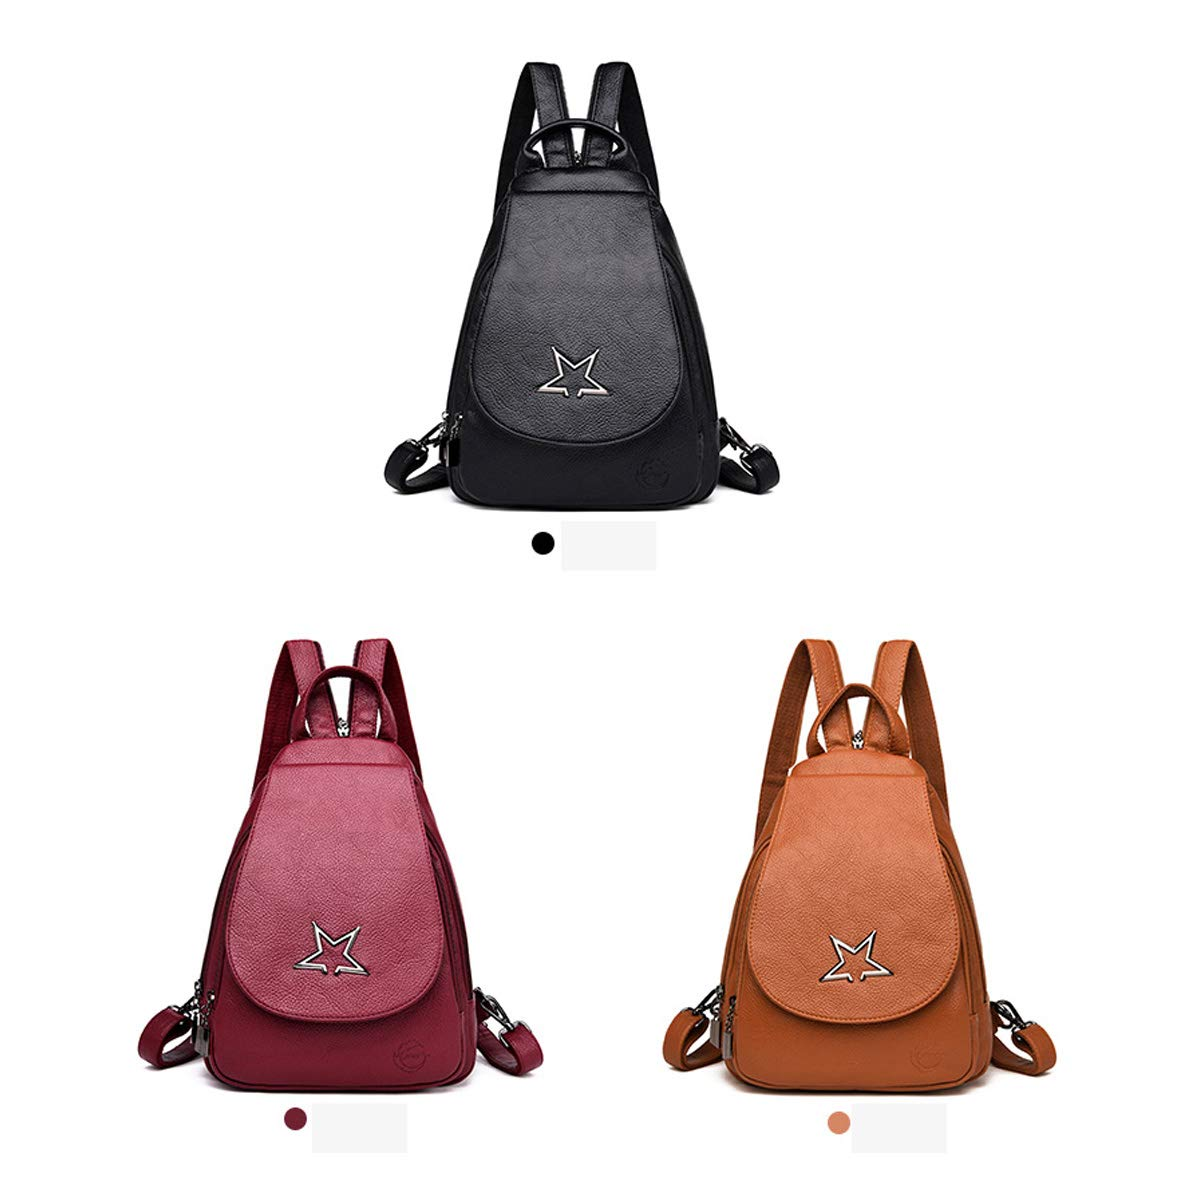 Black//Brown//Red ZHICHUANG Girls Multipurpose Backpack for Daily Travel//Travel//School//Work//Fashion//Leisure PU Leather Simple Fashion for Women /& Men